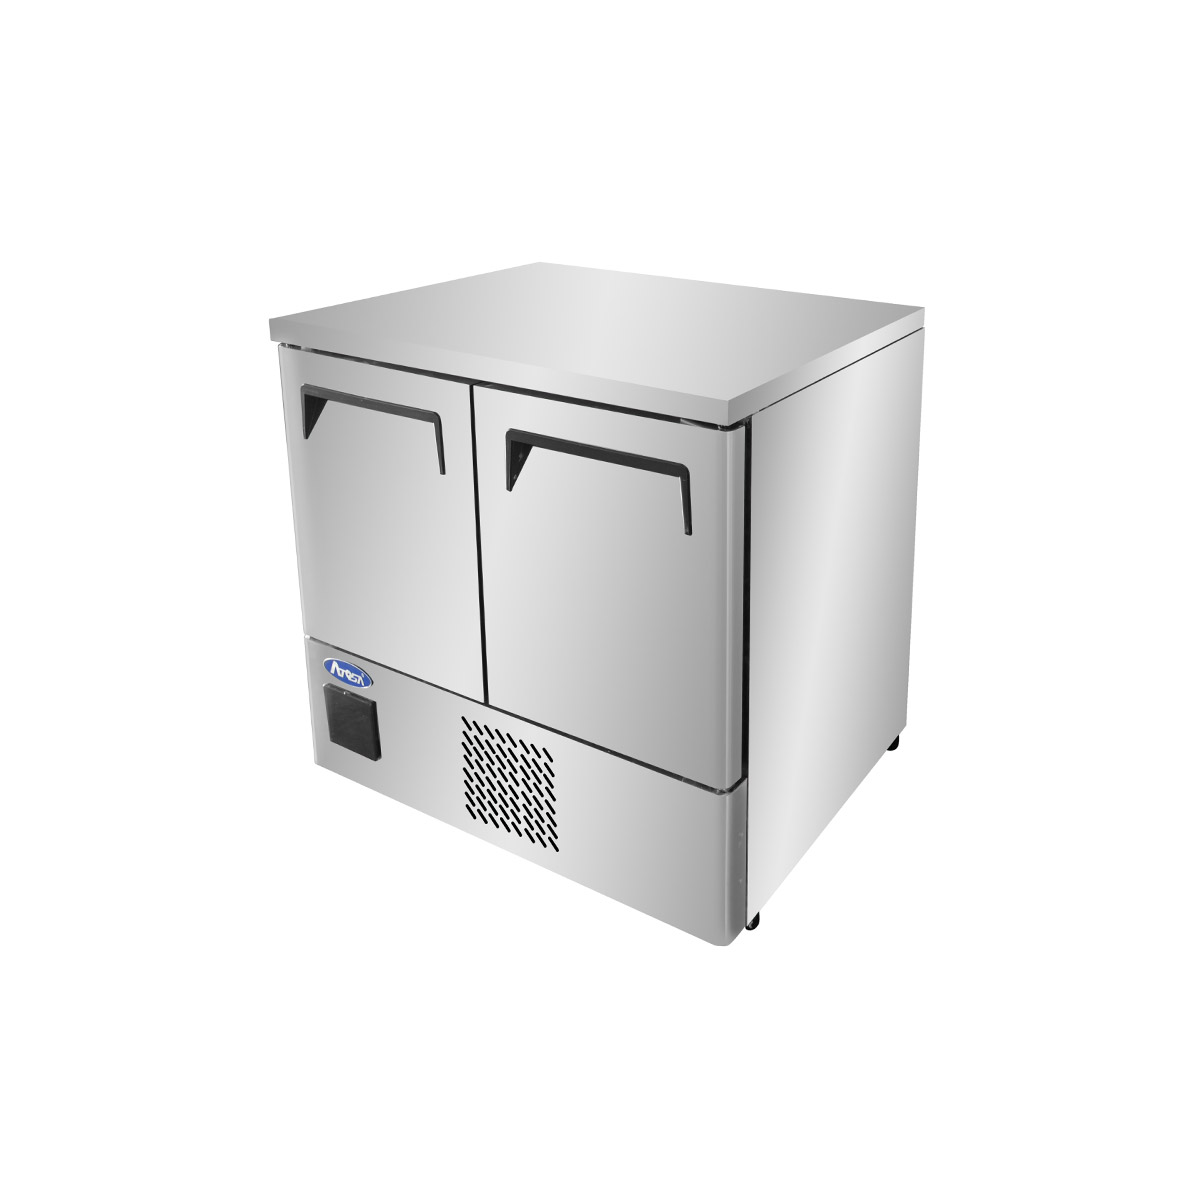 Atosa ESF8R Double Door Space Saving Counter Refrigerator